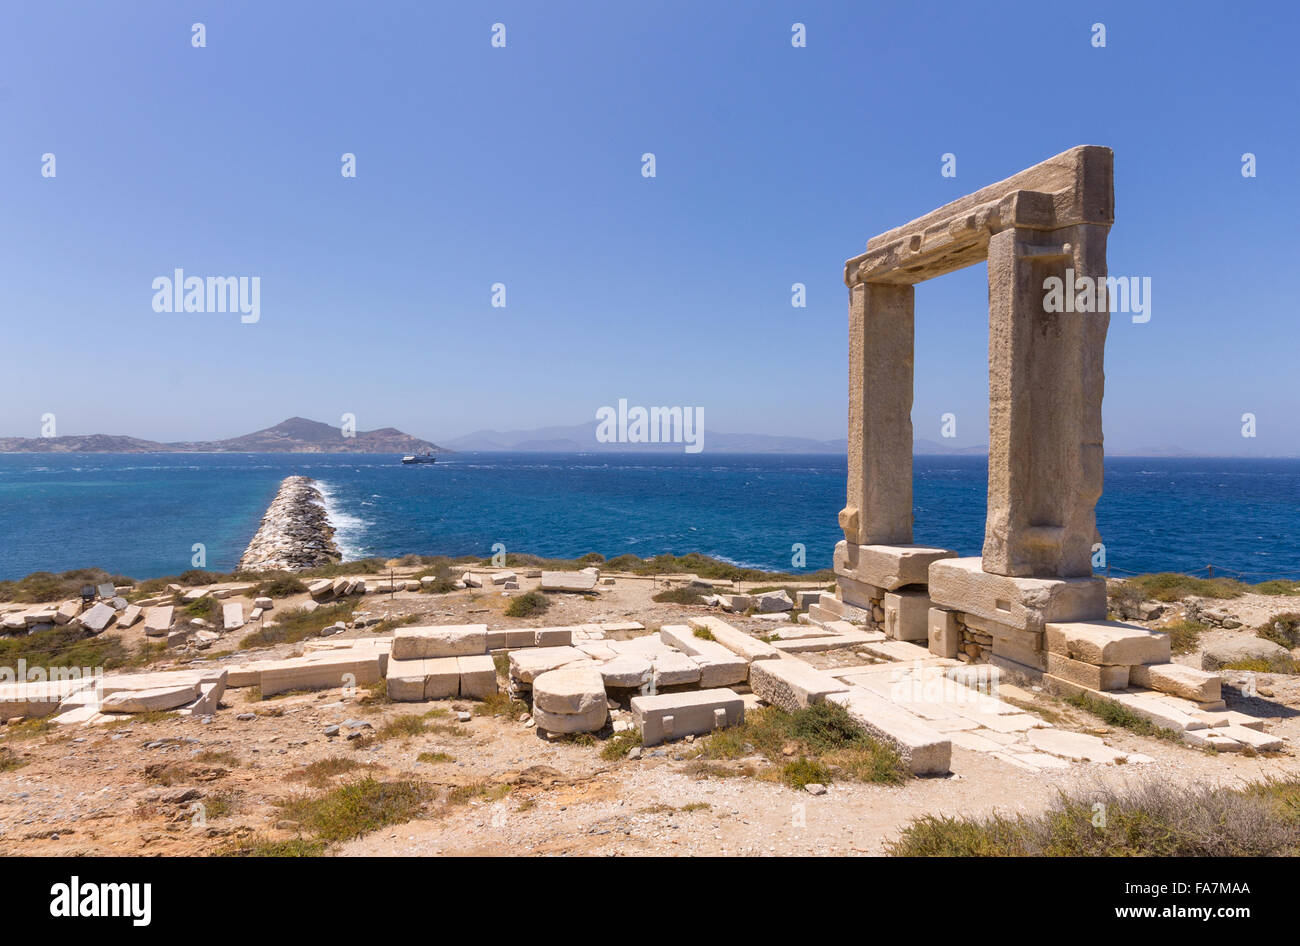 Greece, Cyclades Islands, Naxos, Apollo Temple - Stock Image